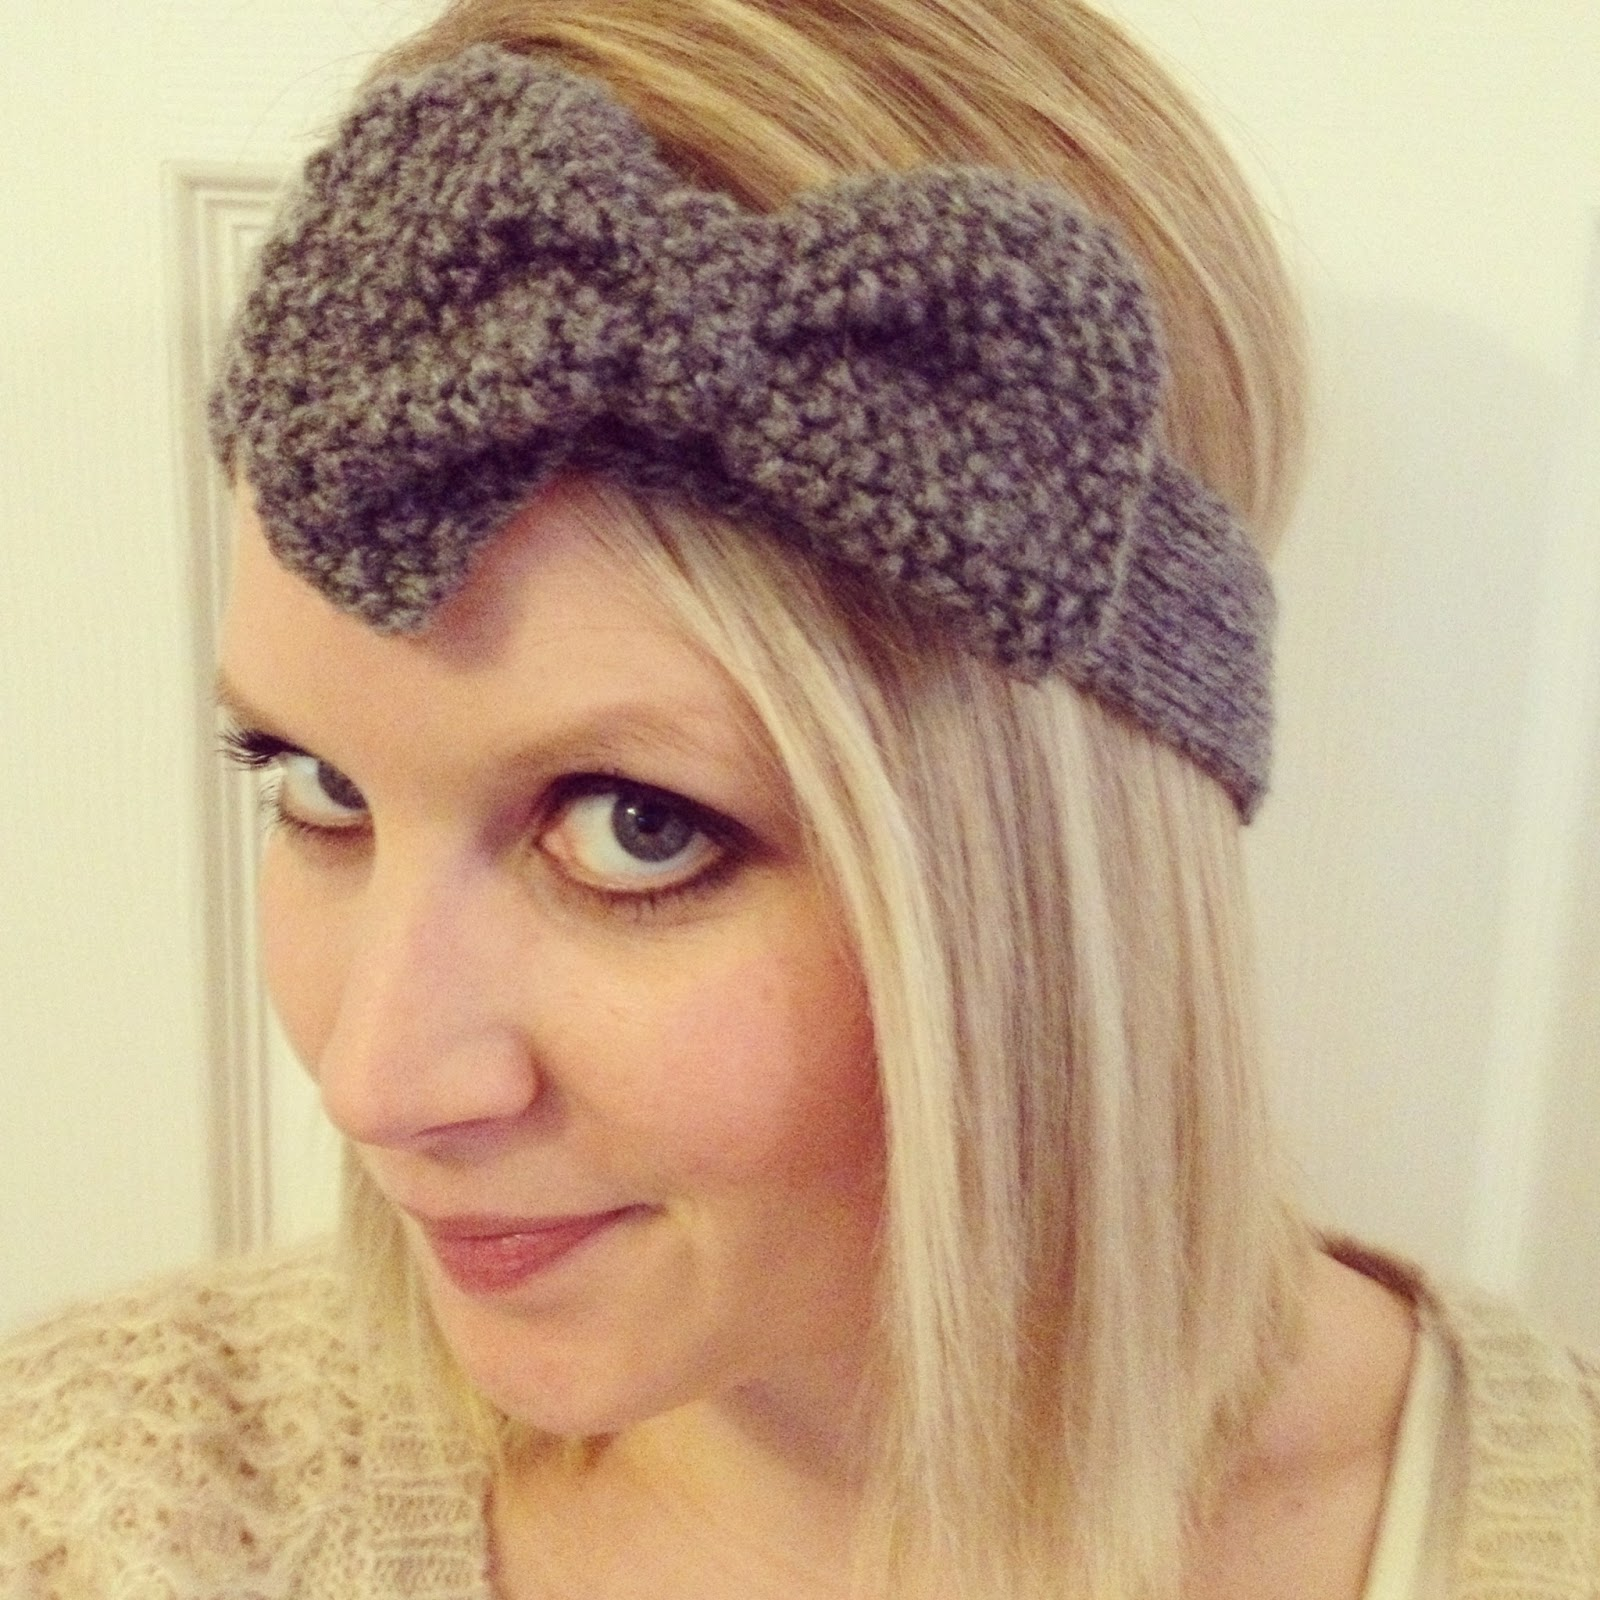 My First Knitting Project - Cute Bow Headband! Fizzy ...